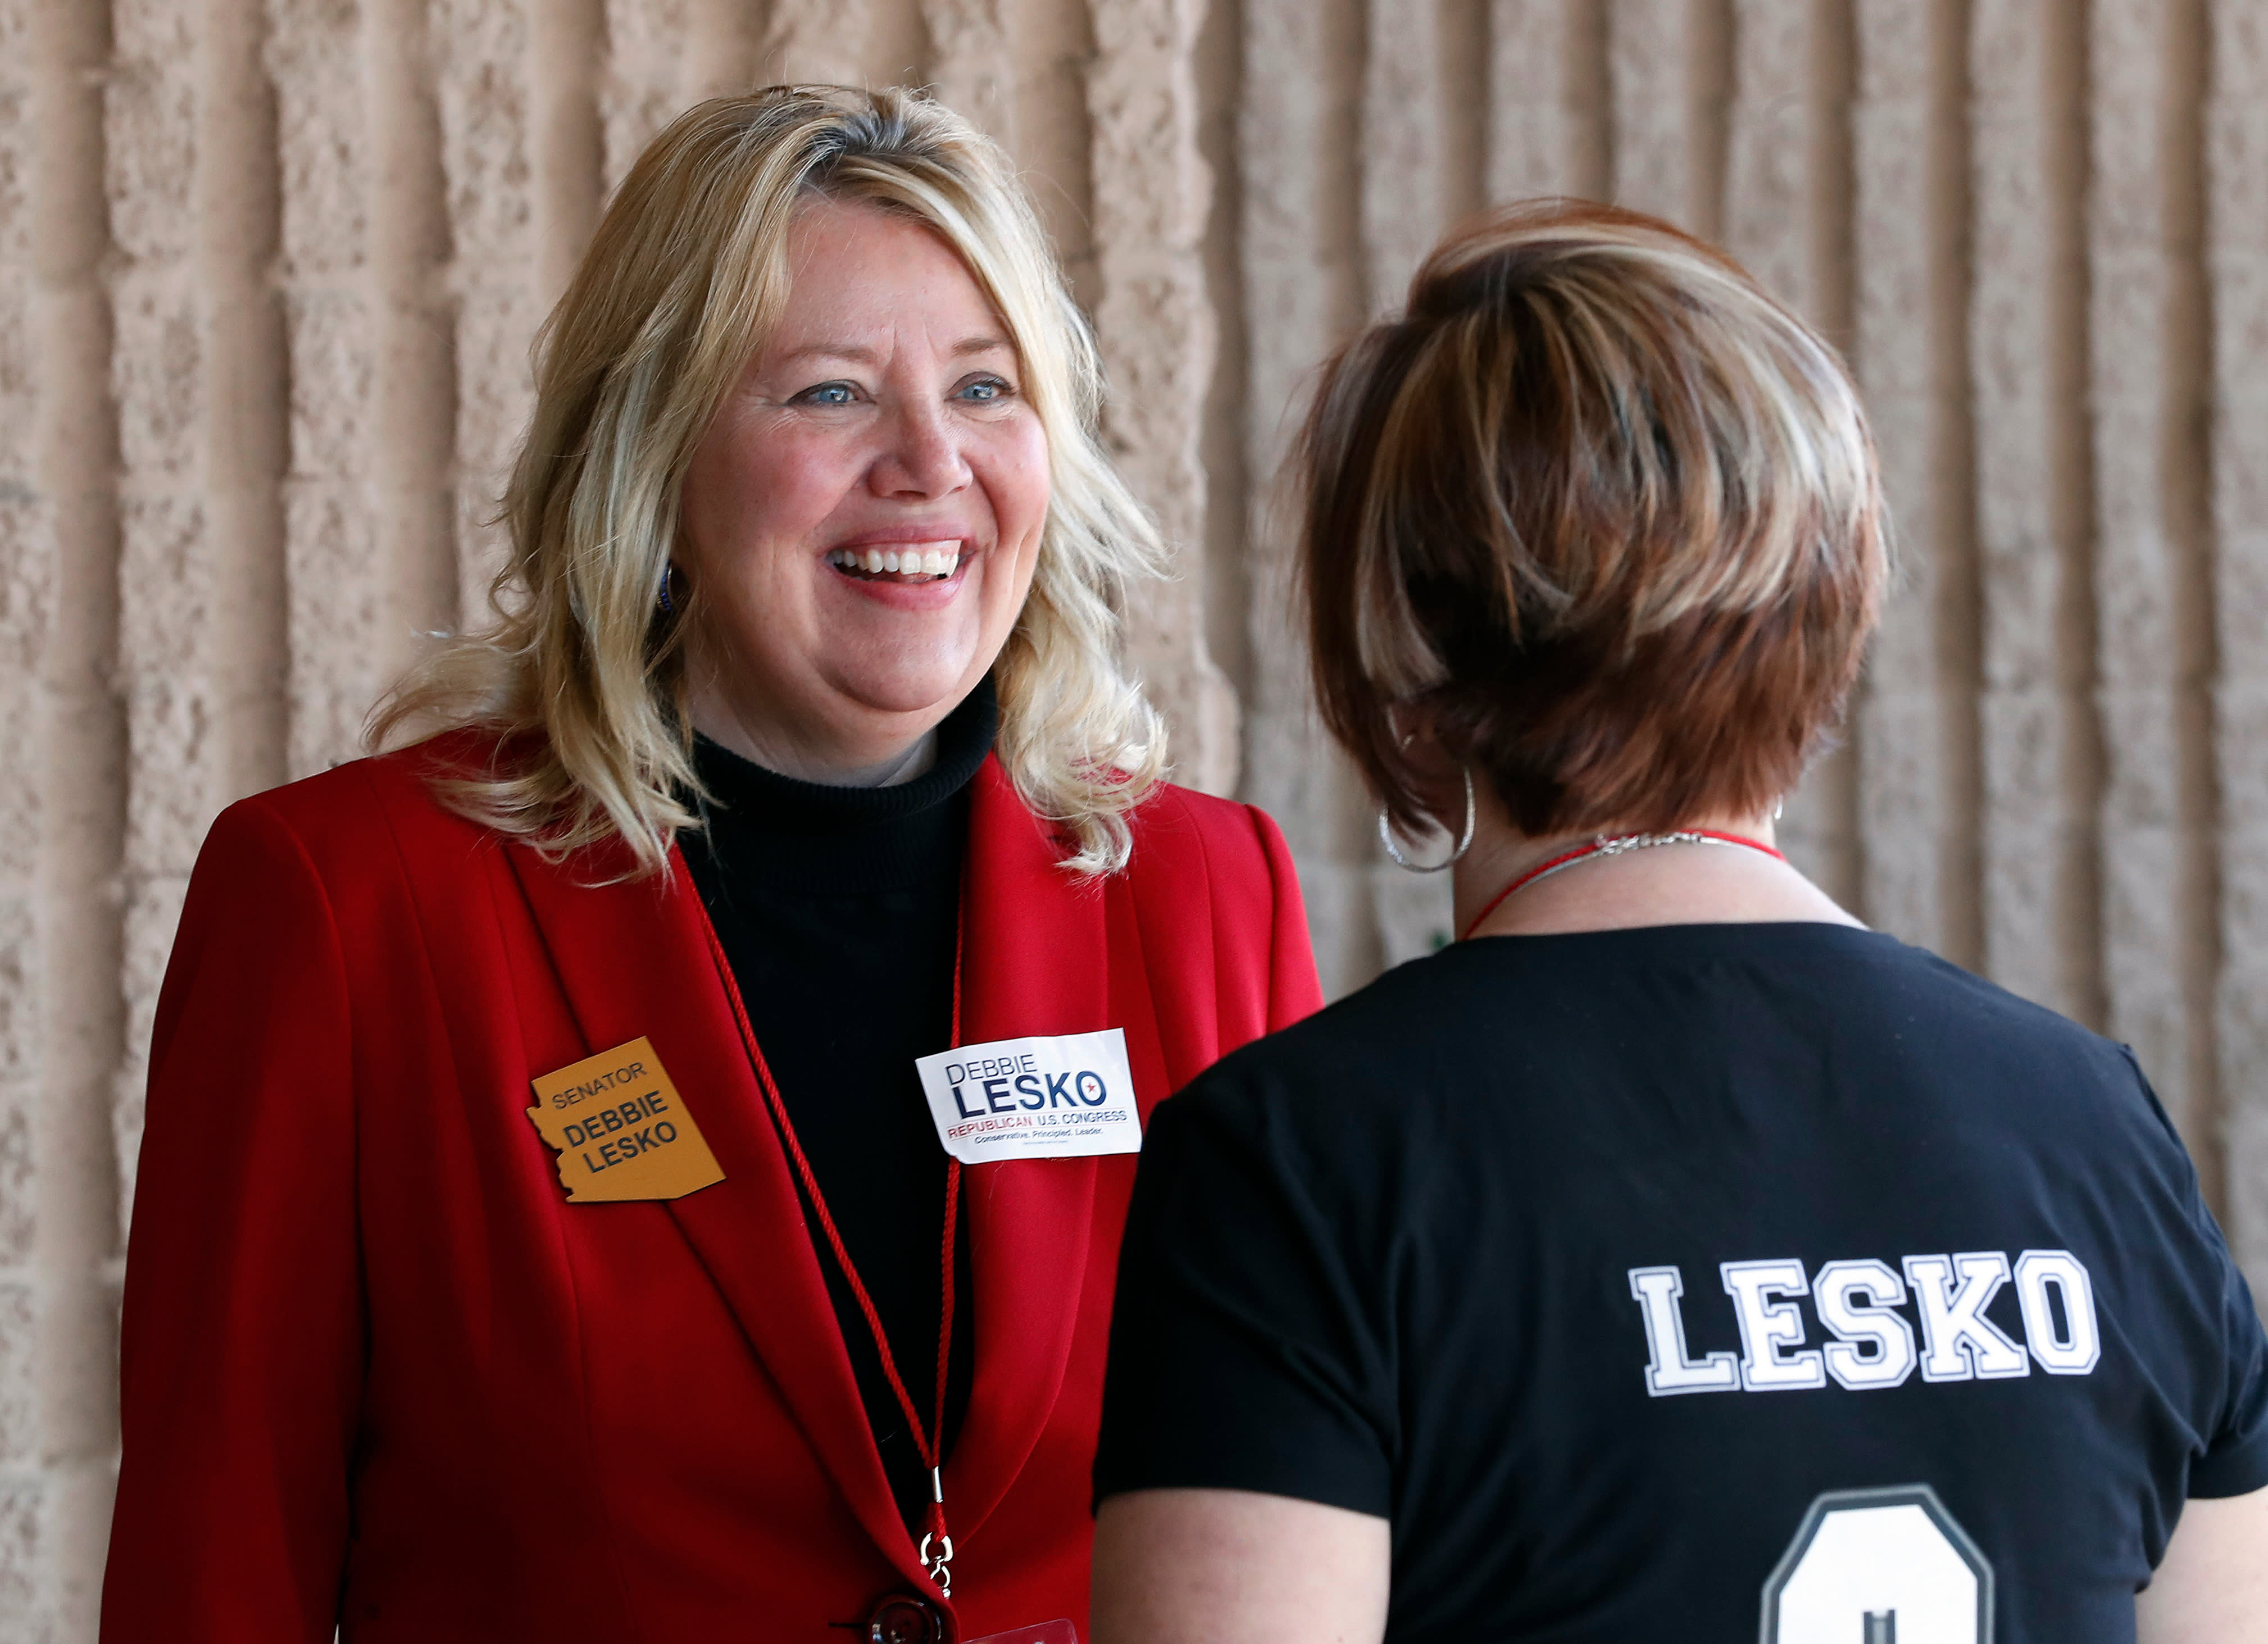 <p> FILE - In this Jan. 27, 2018, file photo, former Arizona state Sen. Debbie Lesko speaks with a constituent during the meeting of the state committee of the Arizona Republican Party in Phoenix. Lesko is running against Hiral Tipirneni in a special election, Tuesday, April 24, to fill the U.S. House seat vacated by Republican Rep. Trent Franks. (AP Photo/Matt York, File) </p>